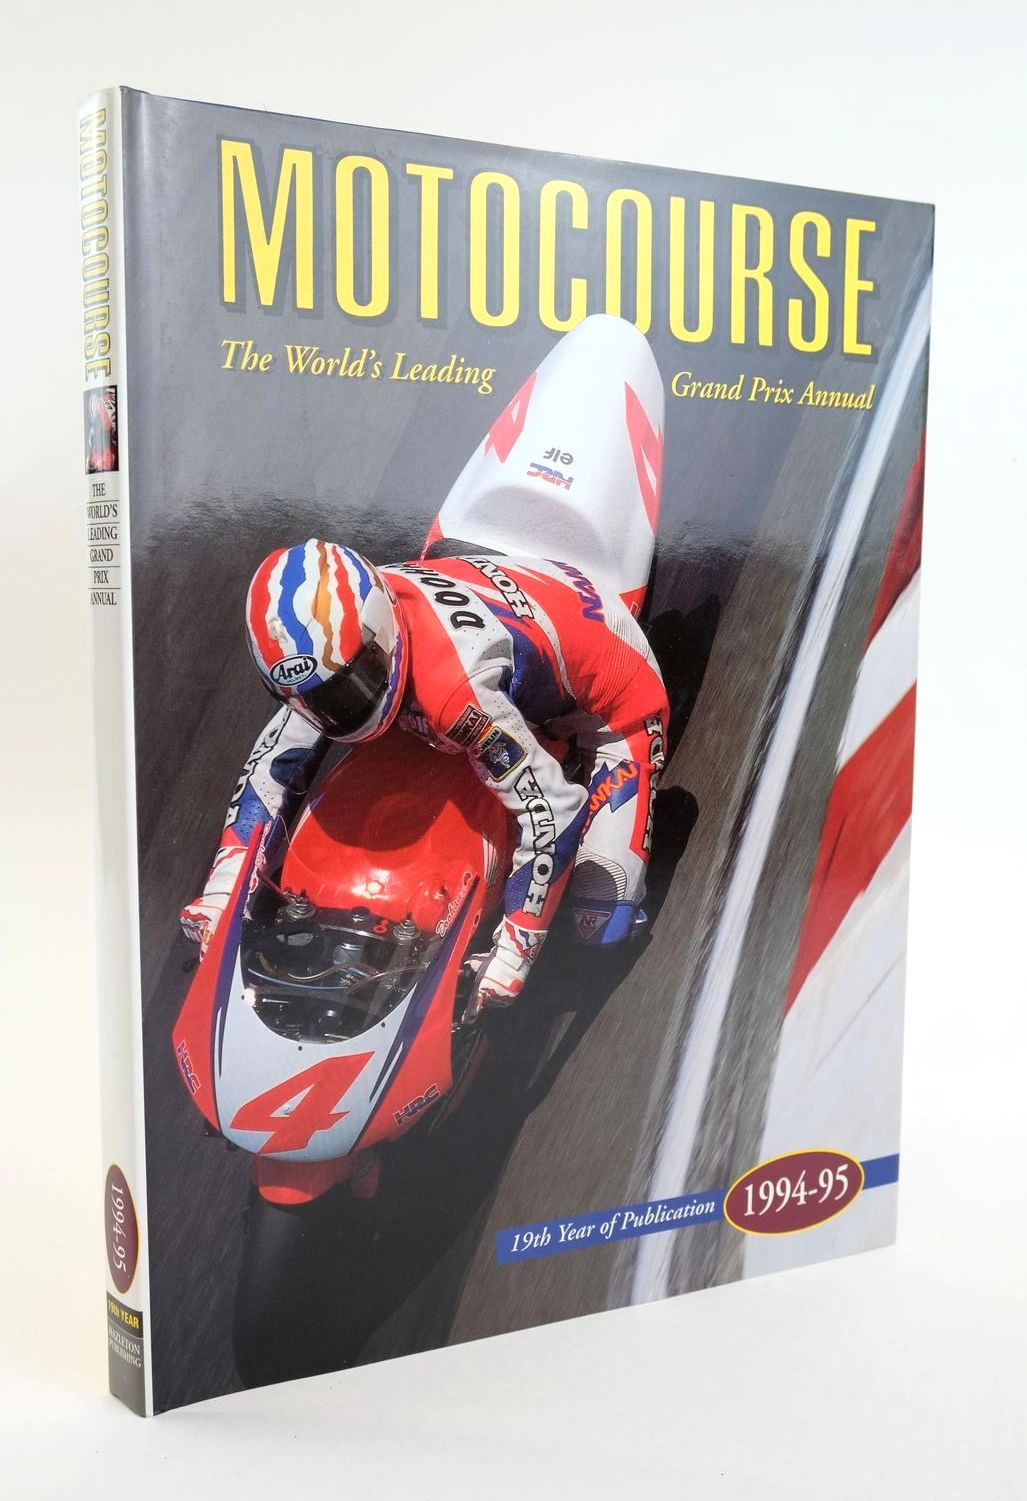 Photo of MOTOCOURSE 1994-95 published by Hazleton Publishing (STOCK CODE: 1319243)  for sale by Stella & Rose's Books